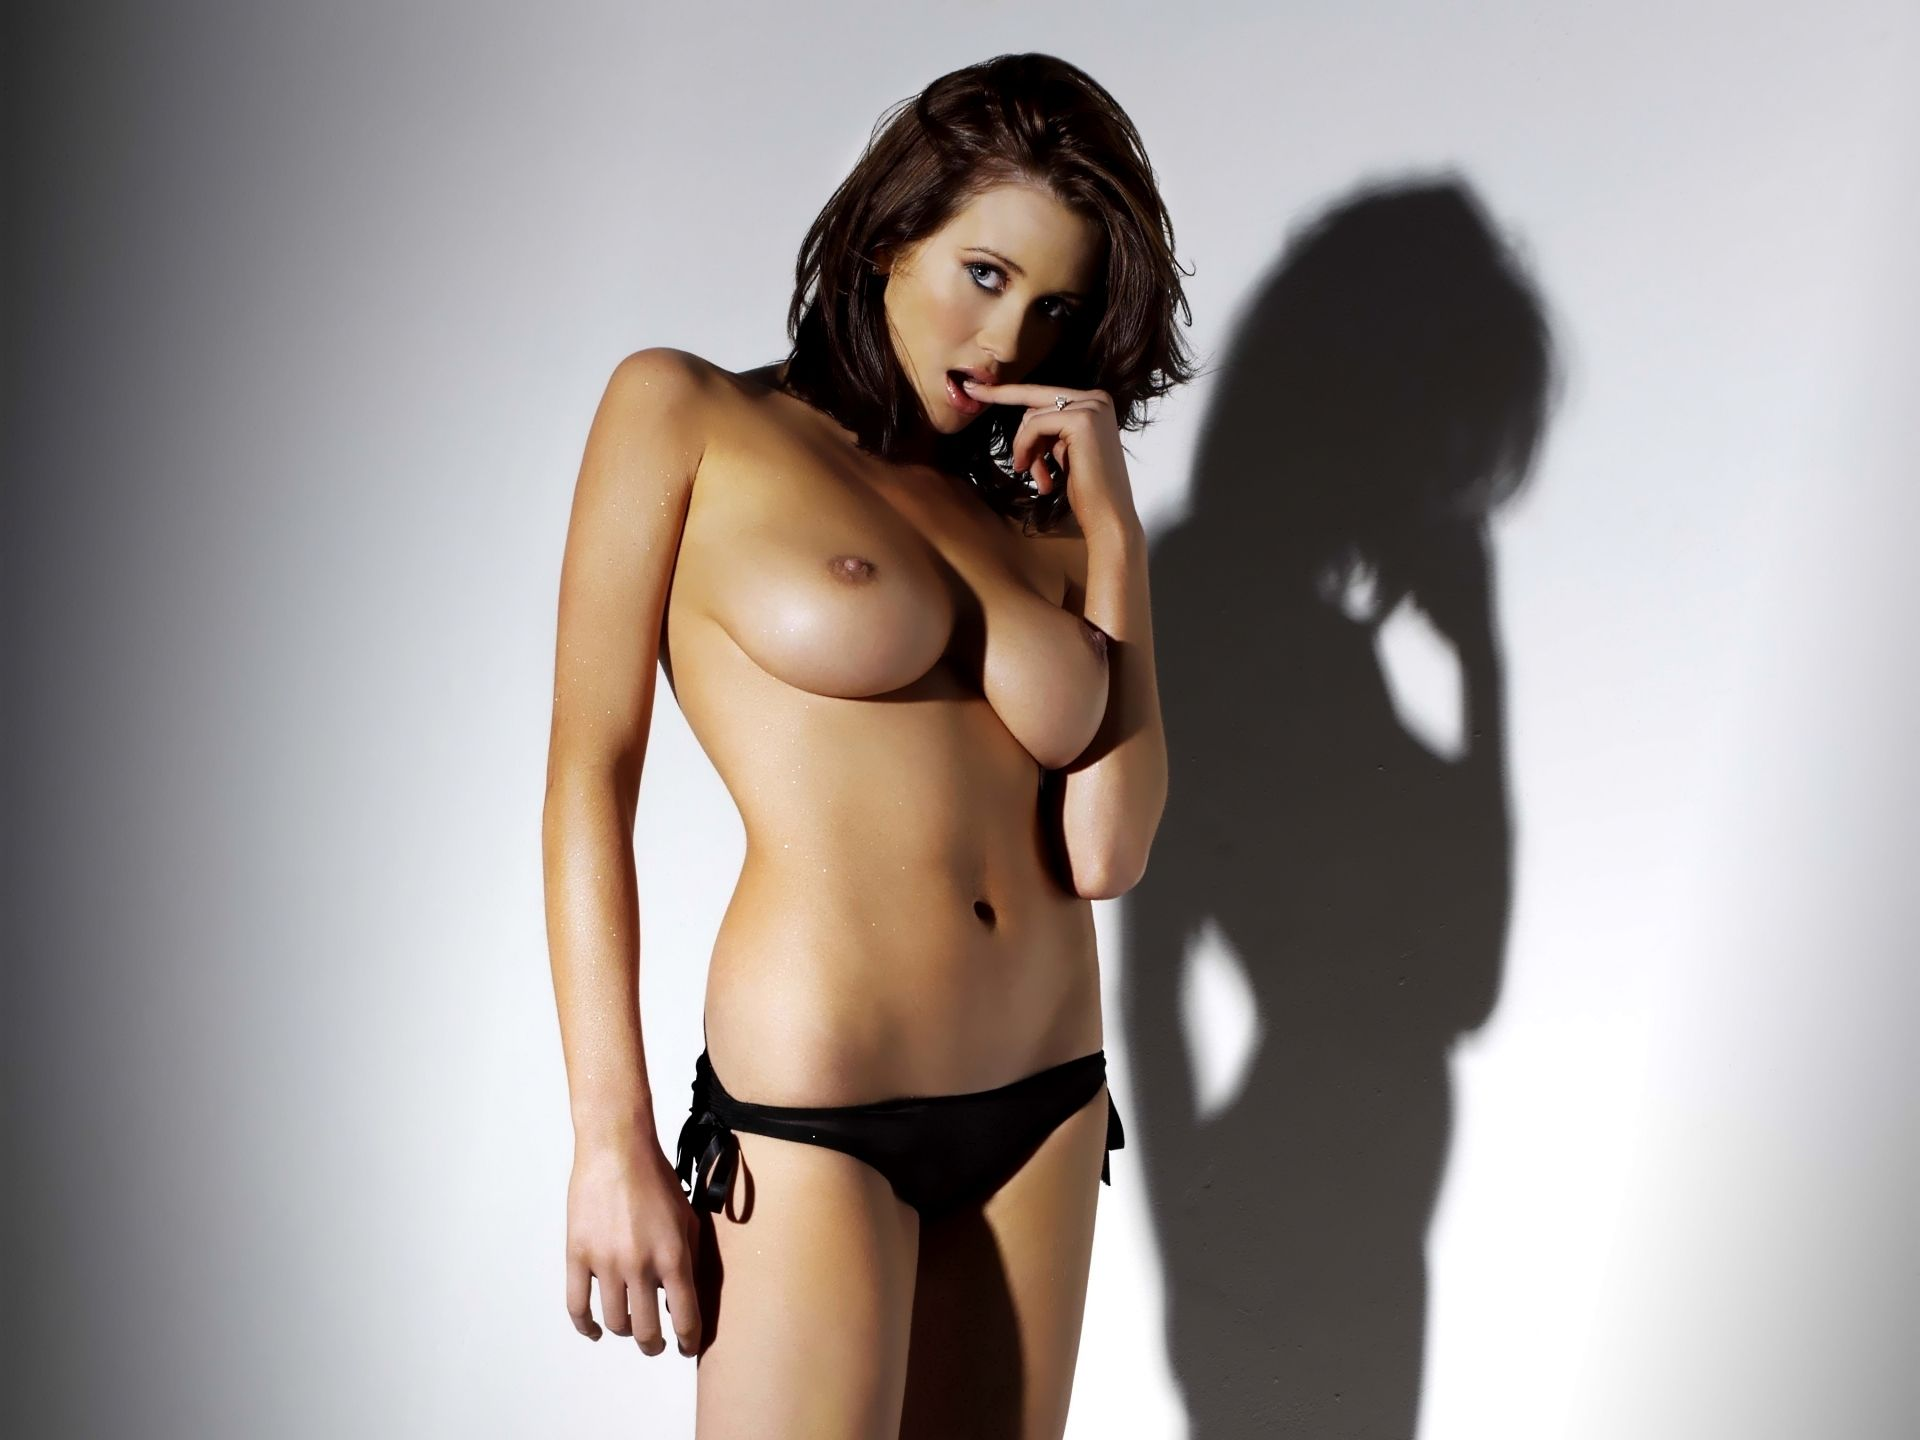 Apologise, but Peta todd naked hd